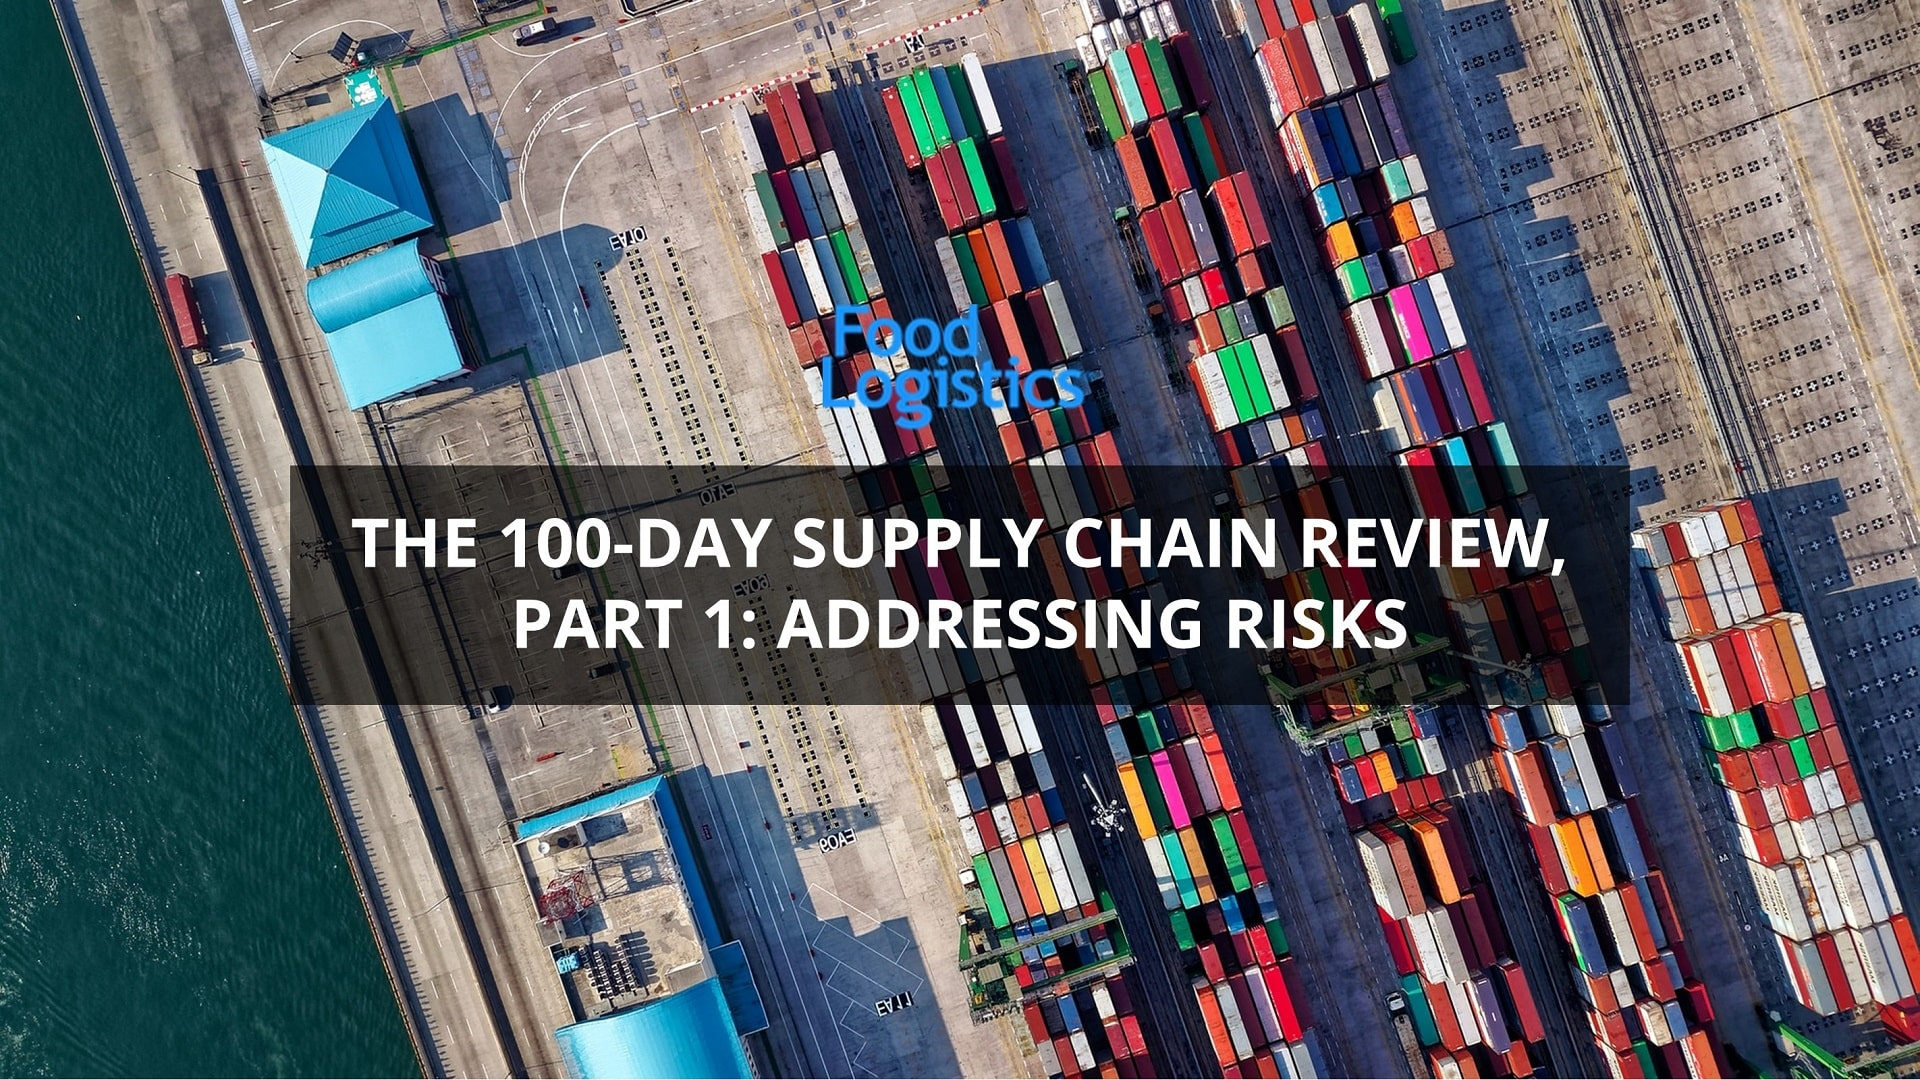 Importance of Continuous Supply Chain Risk Monitoring - US 100-Day Supply Chain Review